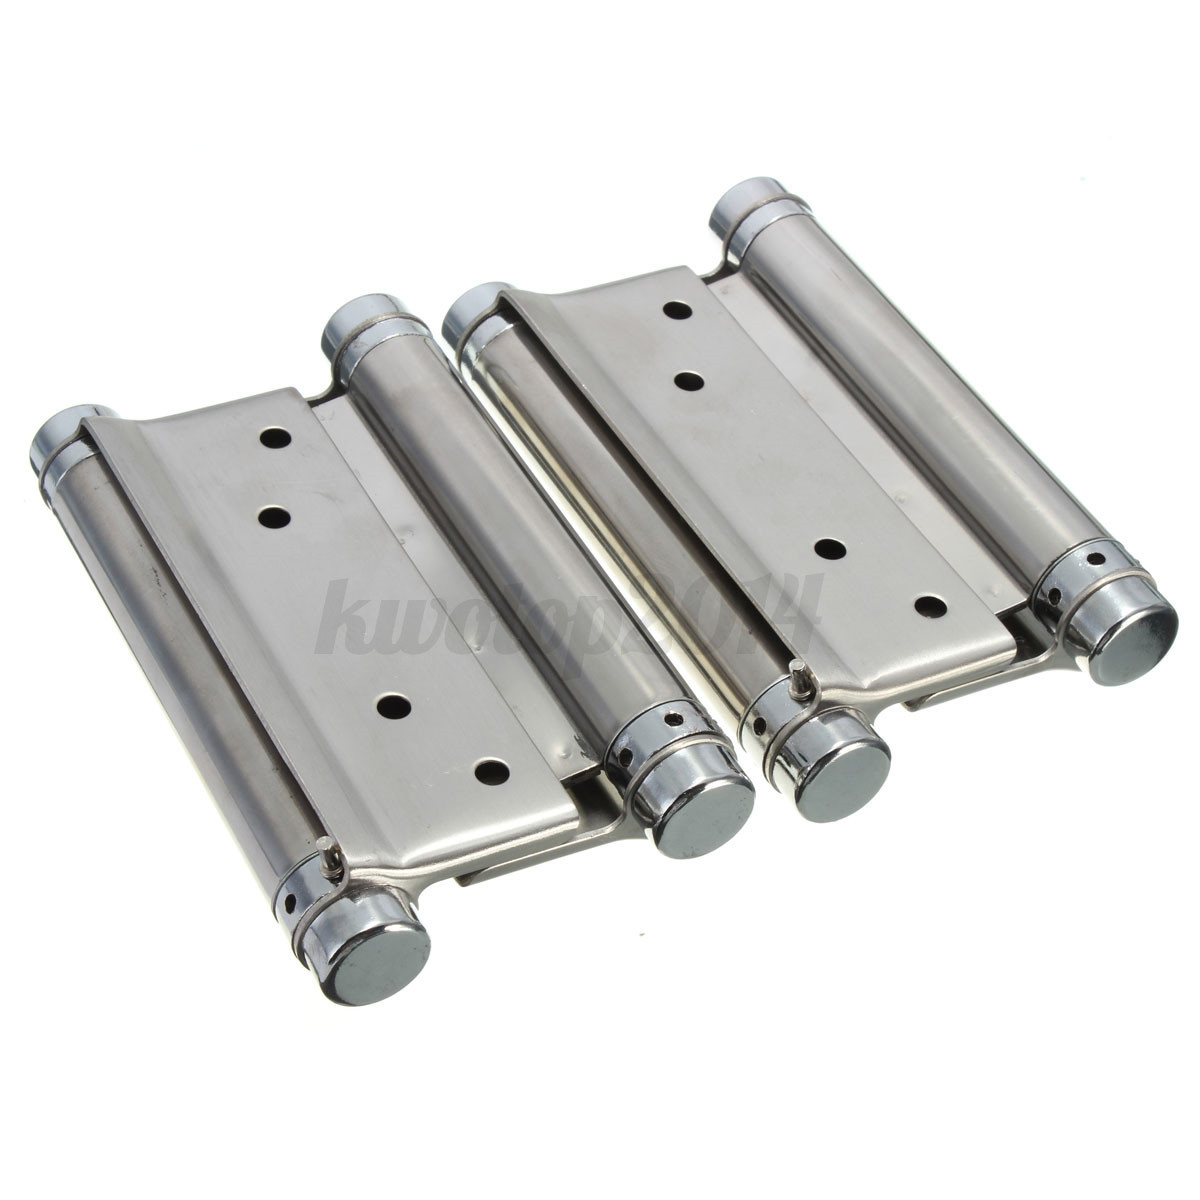 Pc quot  double action spring hinge cafe saloon door